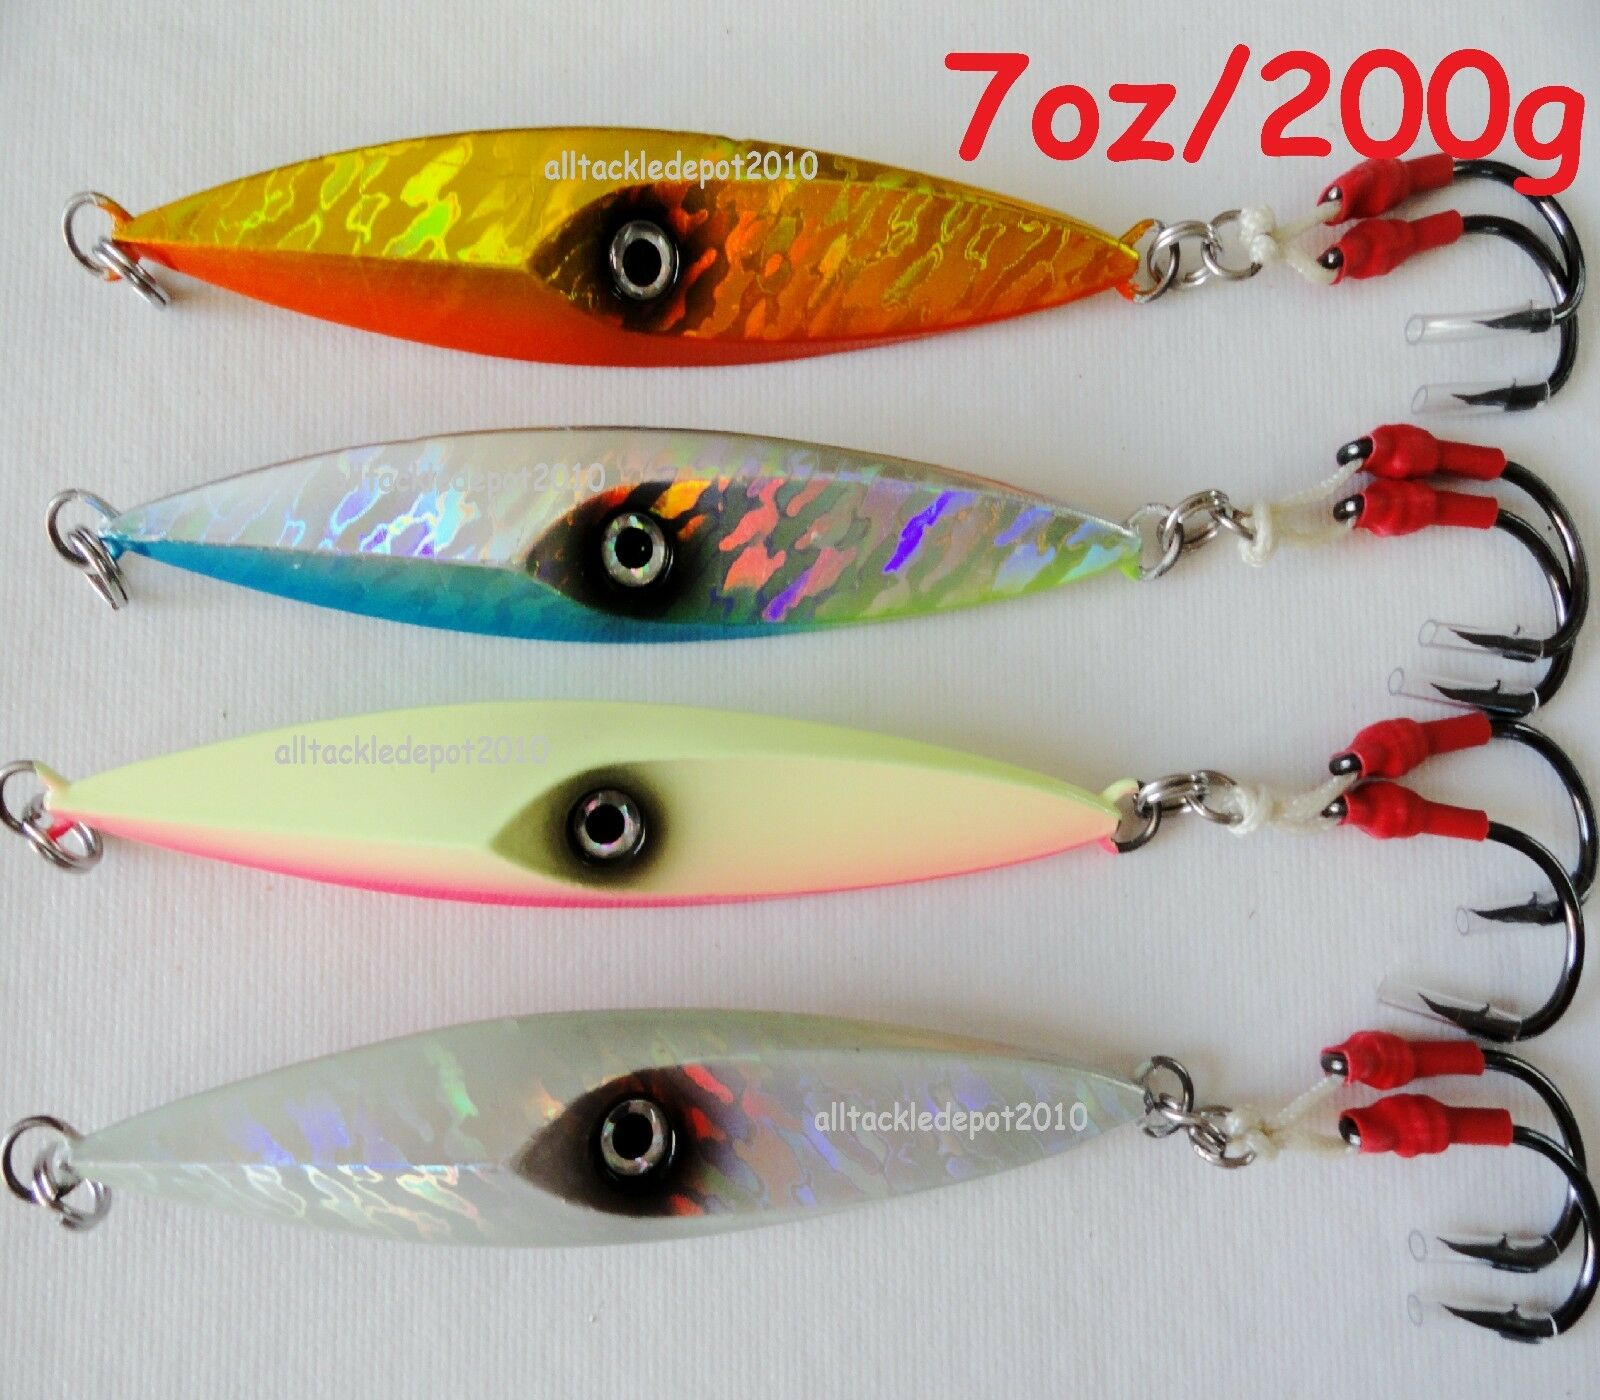 7oz 200g Jigging Diamond Jigs Saltwater Fishing Lures Choose Colorees & Pieces